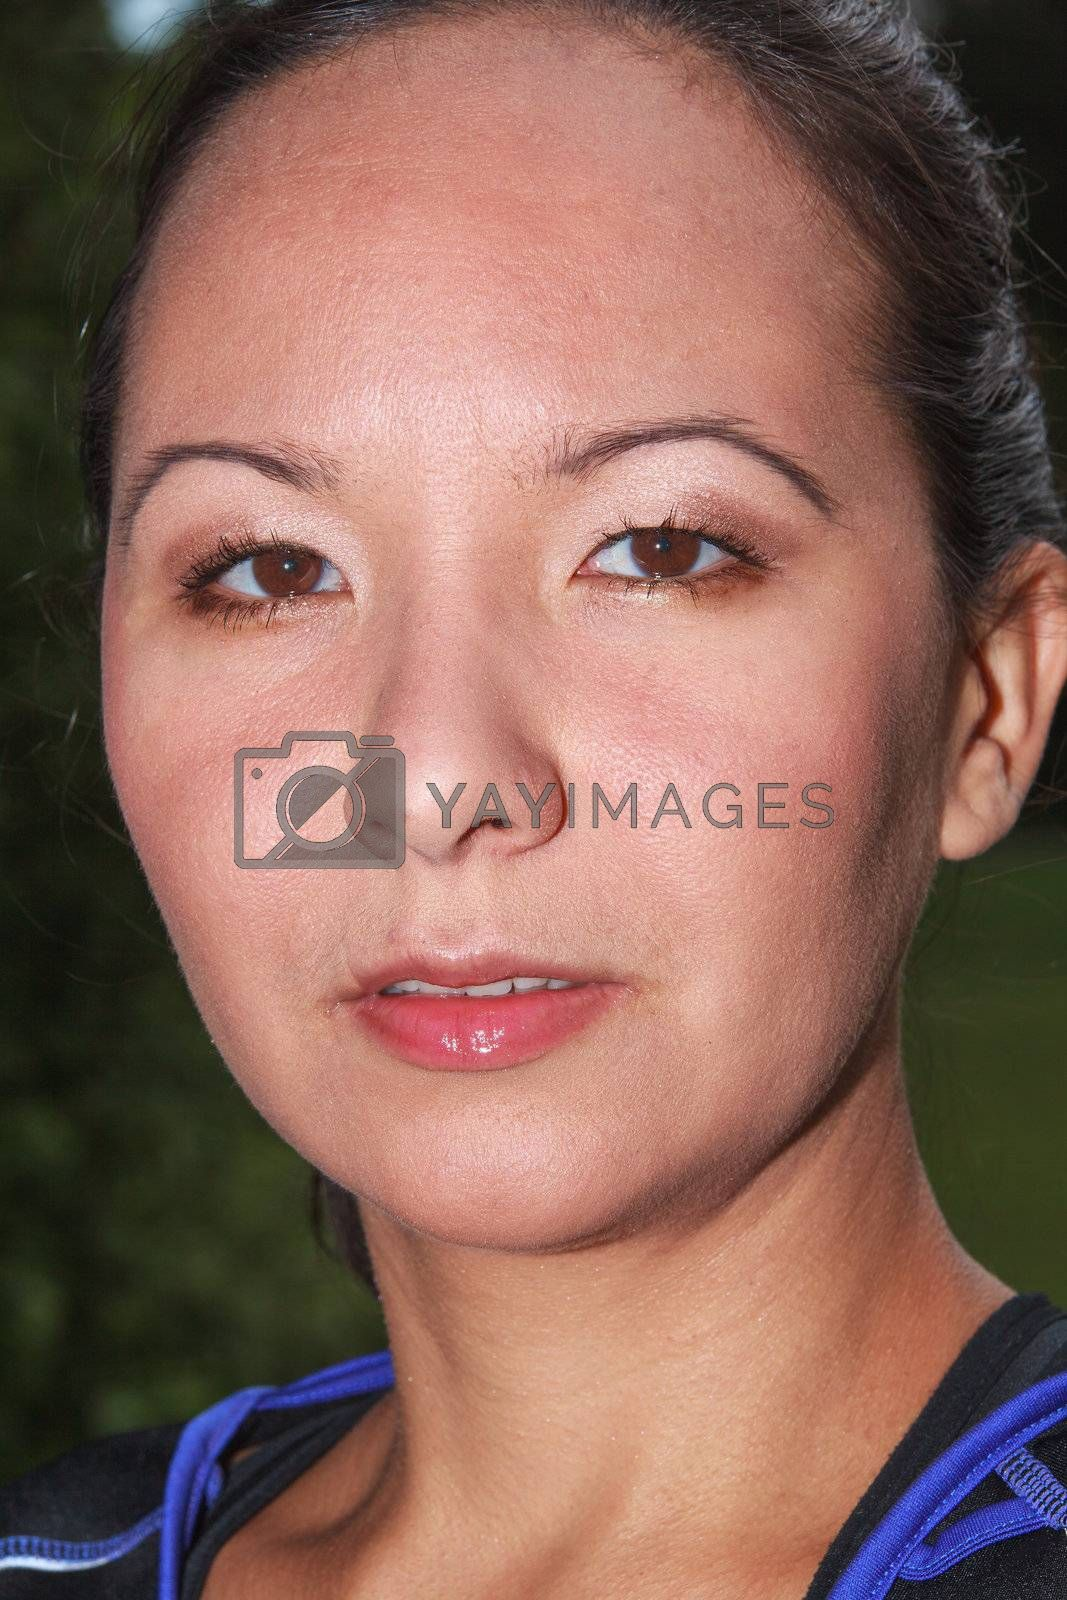 Portrait of a Mongolian woman from Siberia